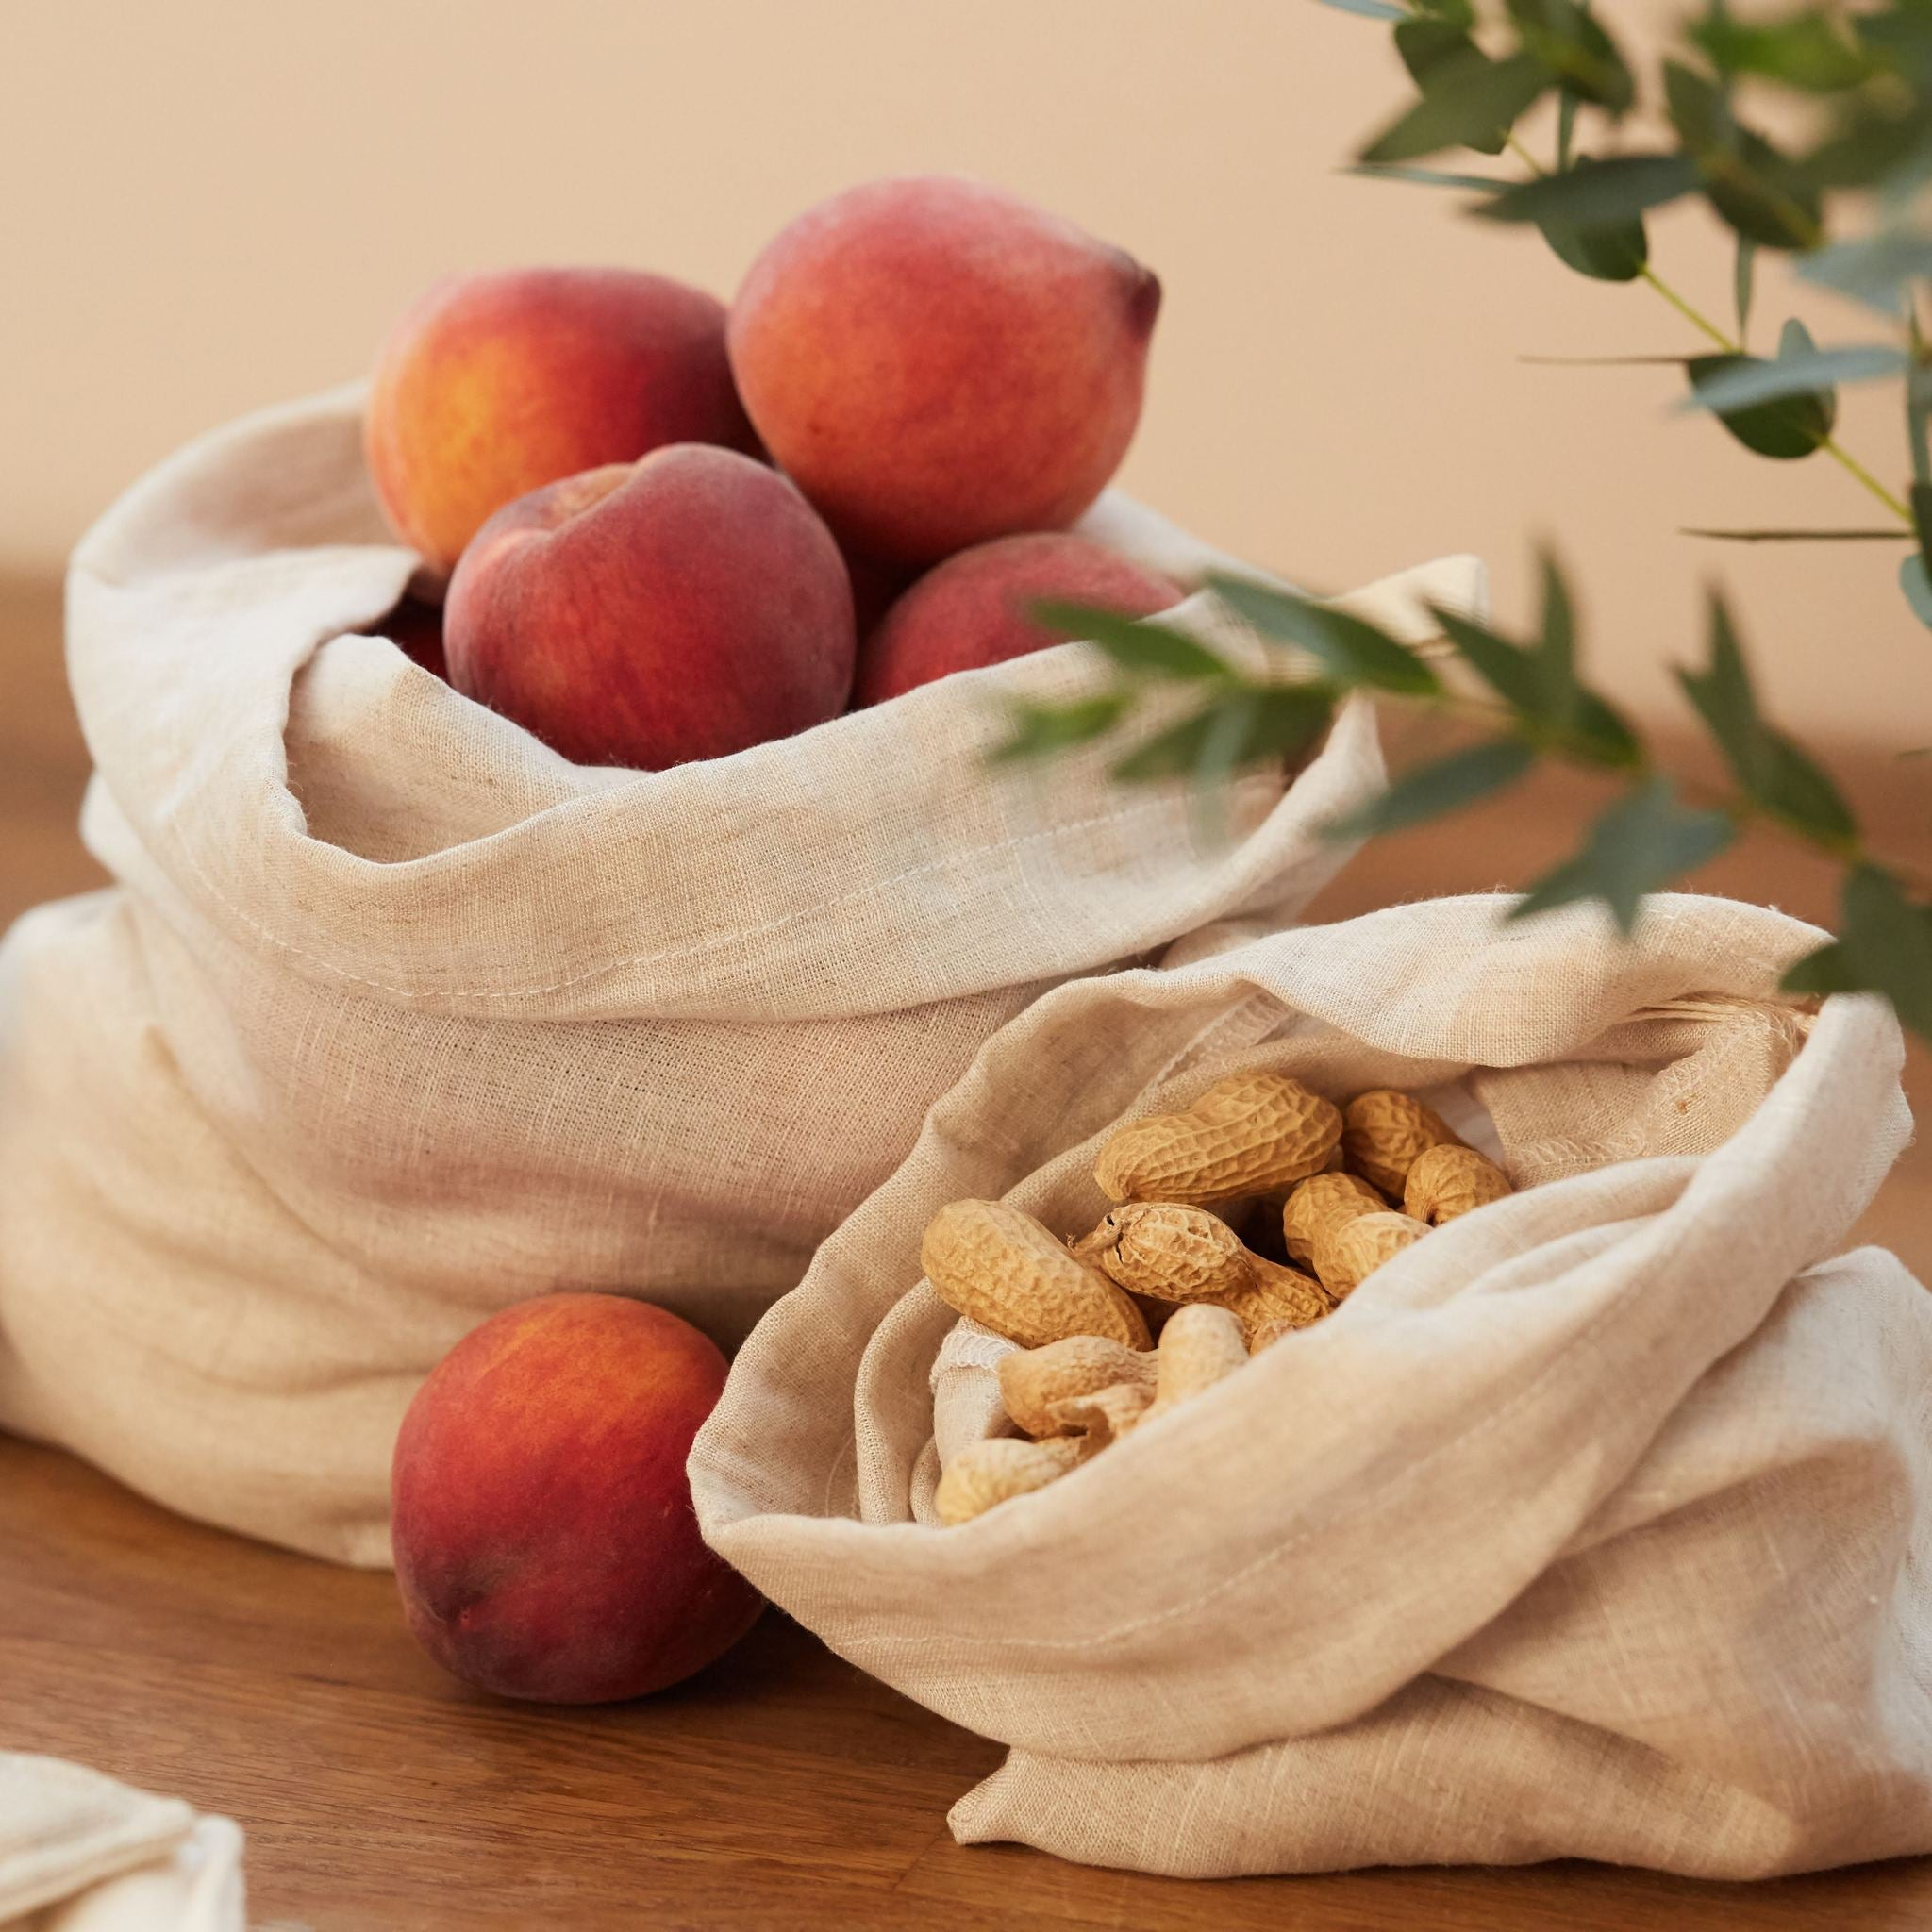 Irish Linen Produce Bags, Natural